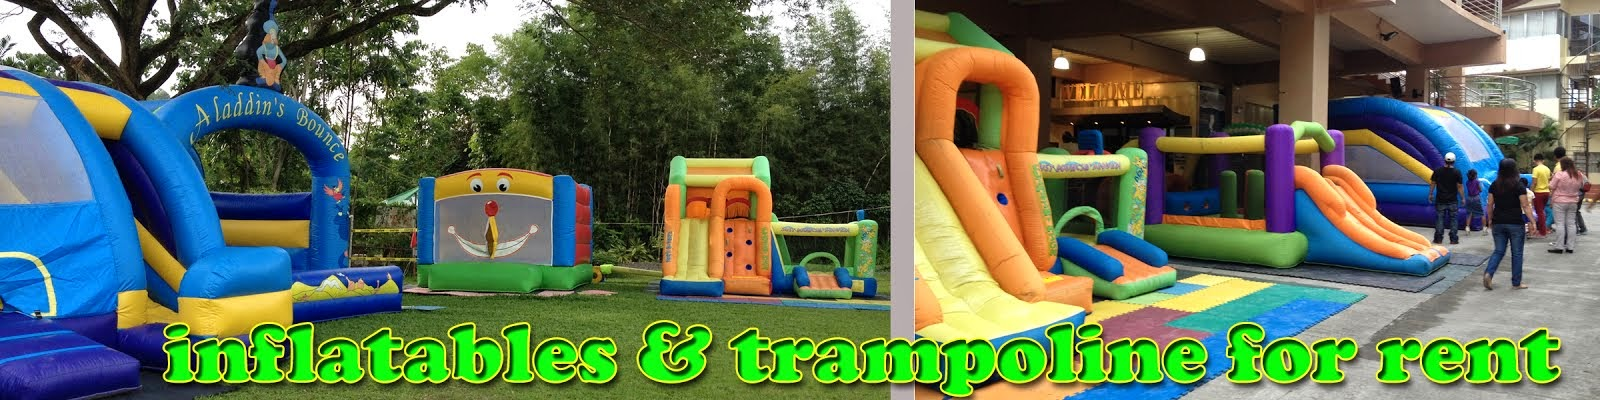 inflatables & trampoline for rent..